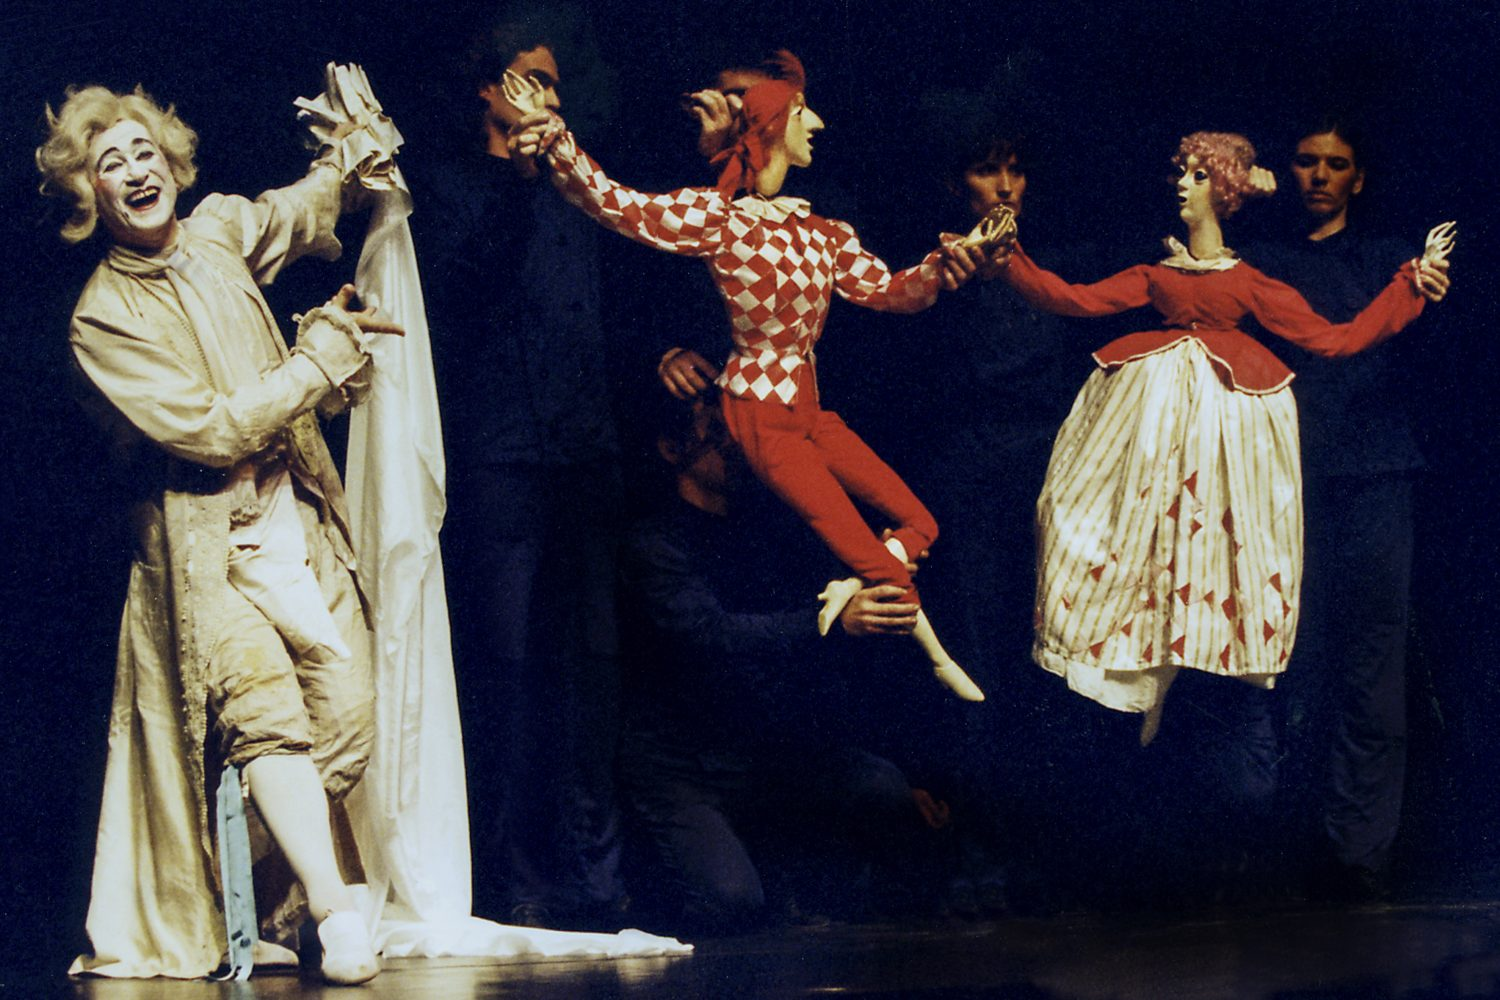 Milan Sládek, The marriage of Figaro (photo by Ctibor Bachratý)